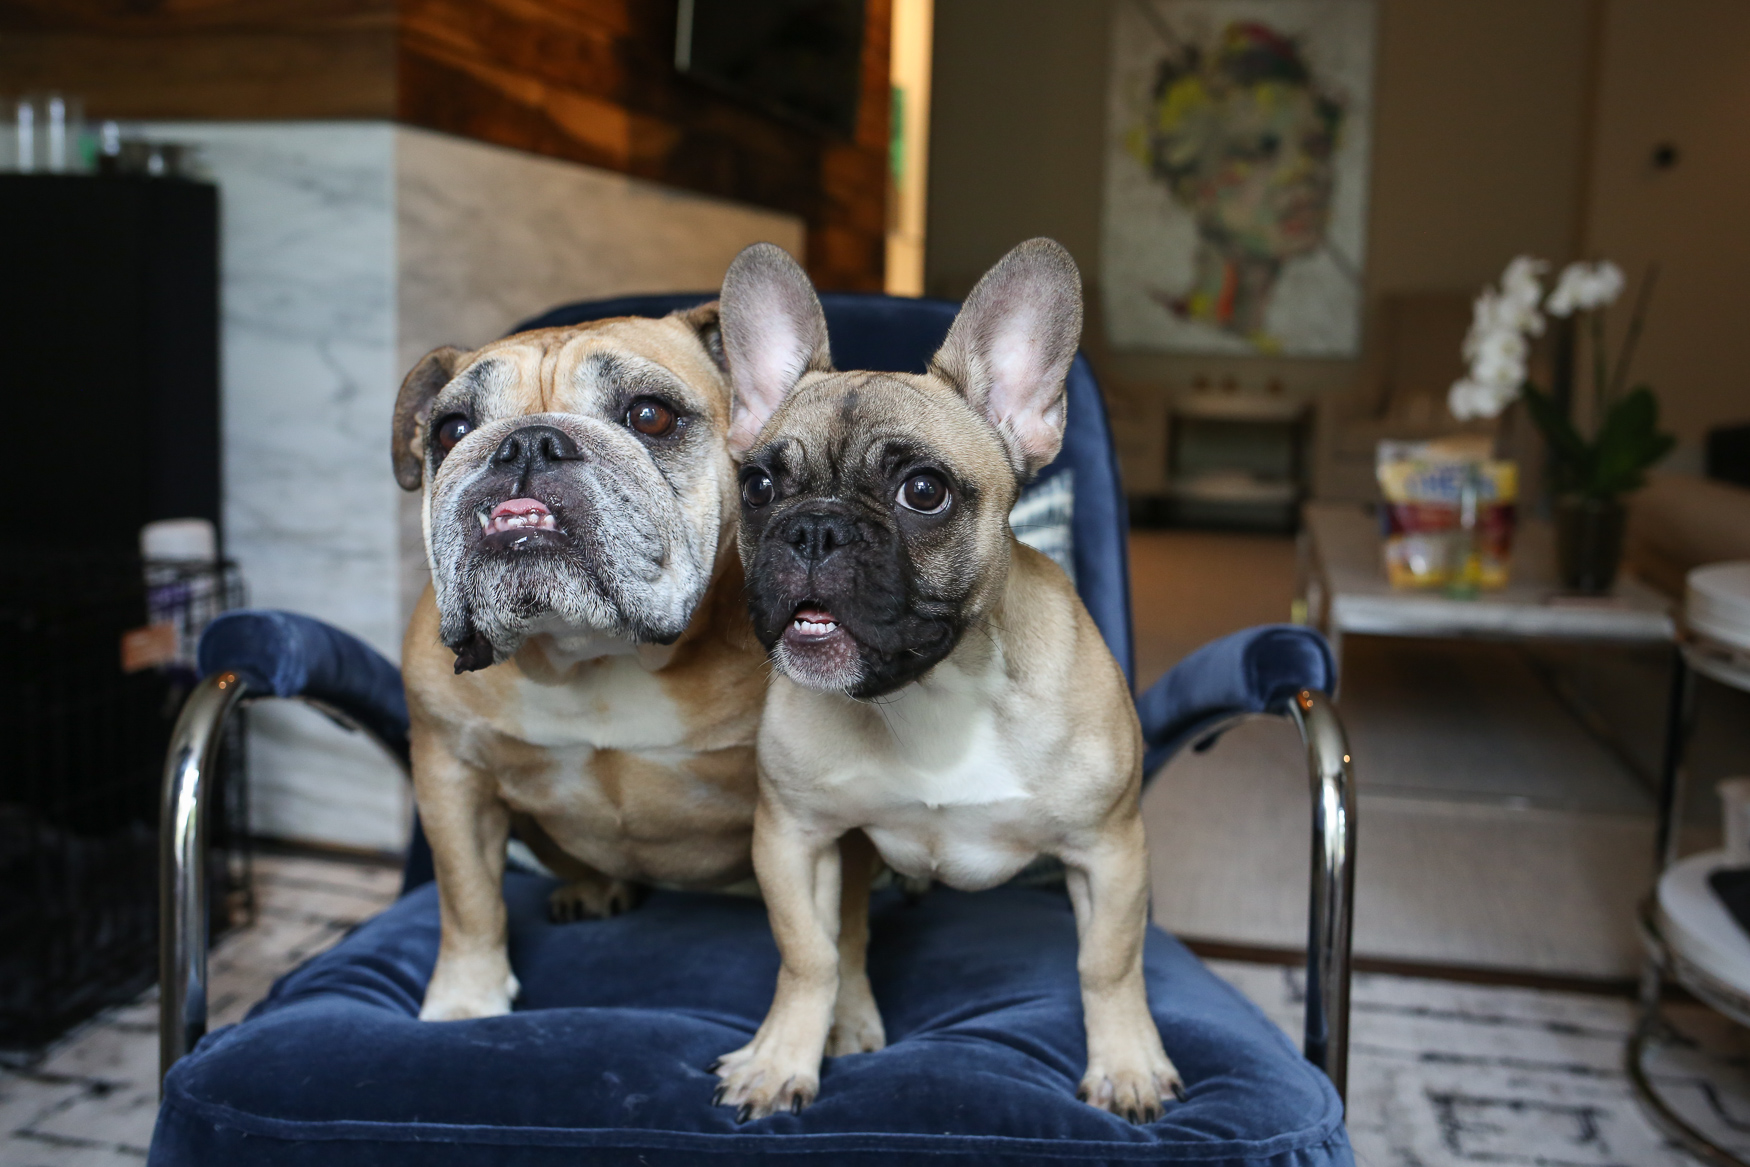 These pups had the cutest faces!{ }(Amanda Andrade-Rhoades/DC Refined)